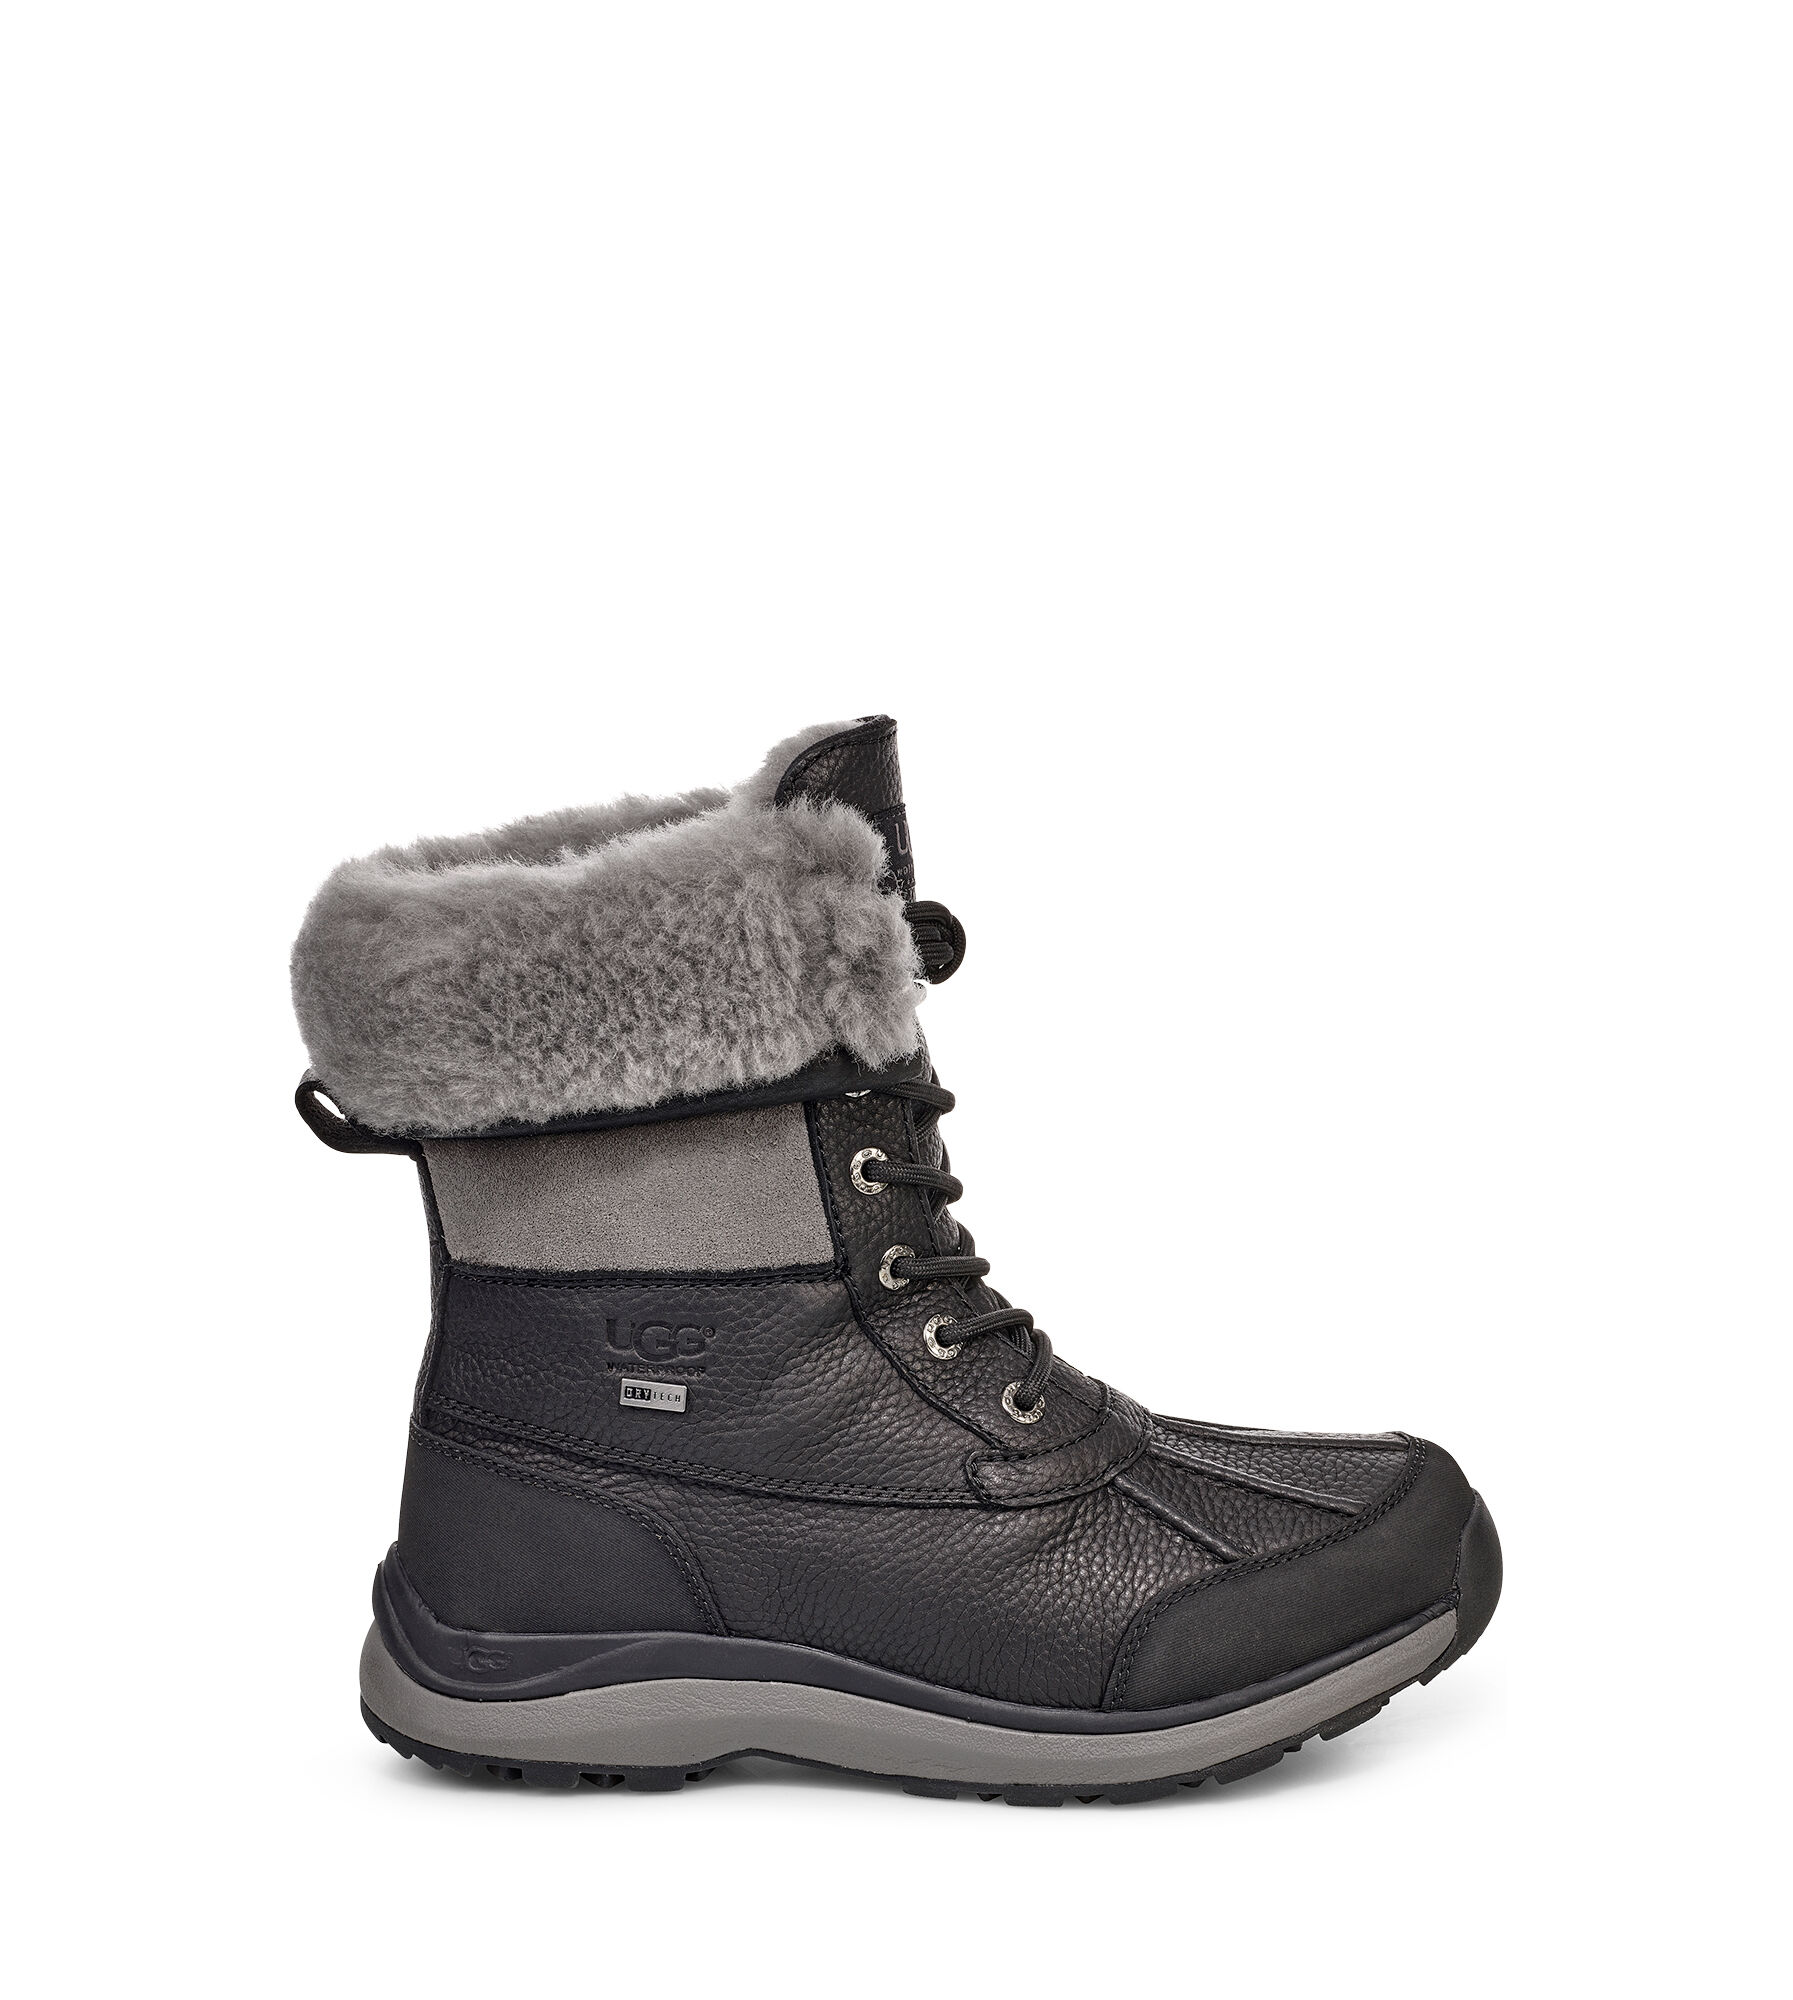 top selling shoes collection footwear for women ugg official rh ugg com